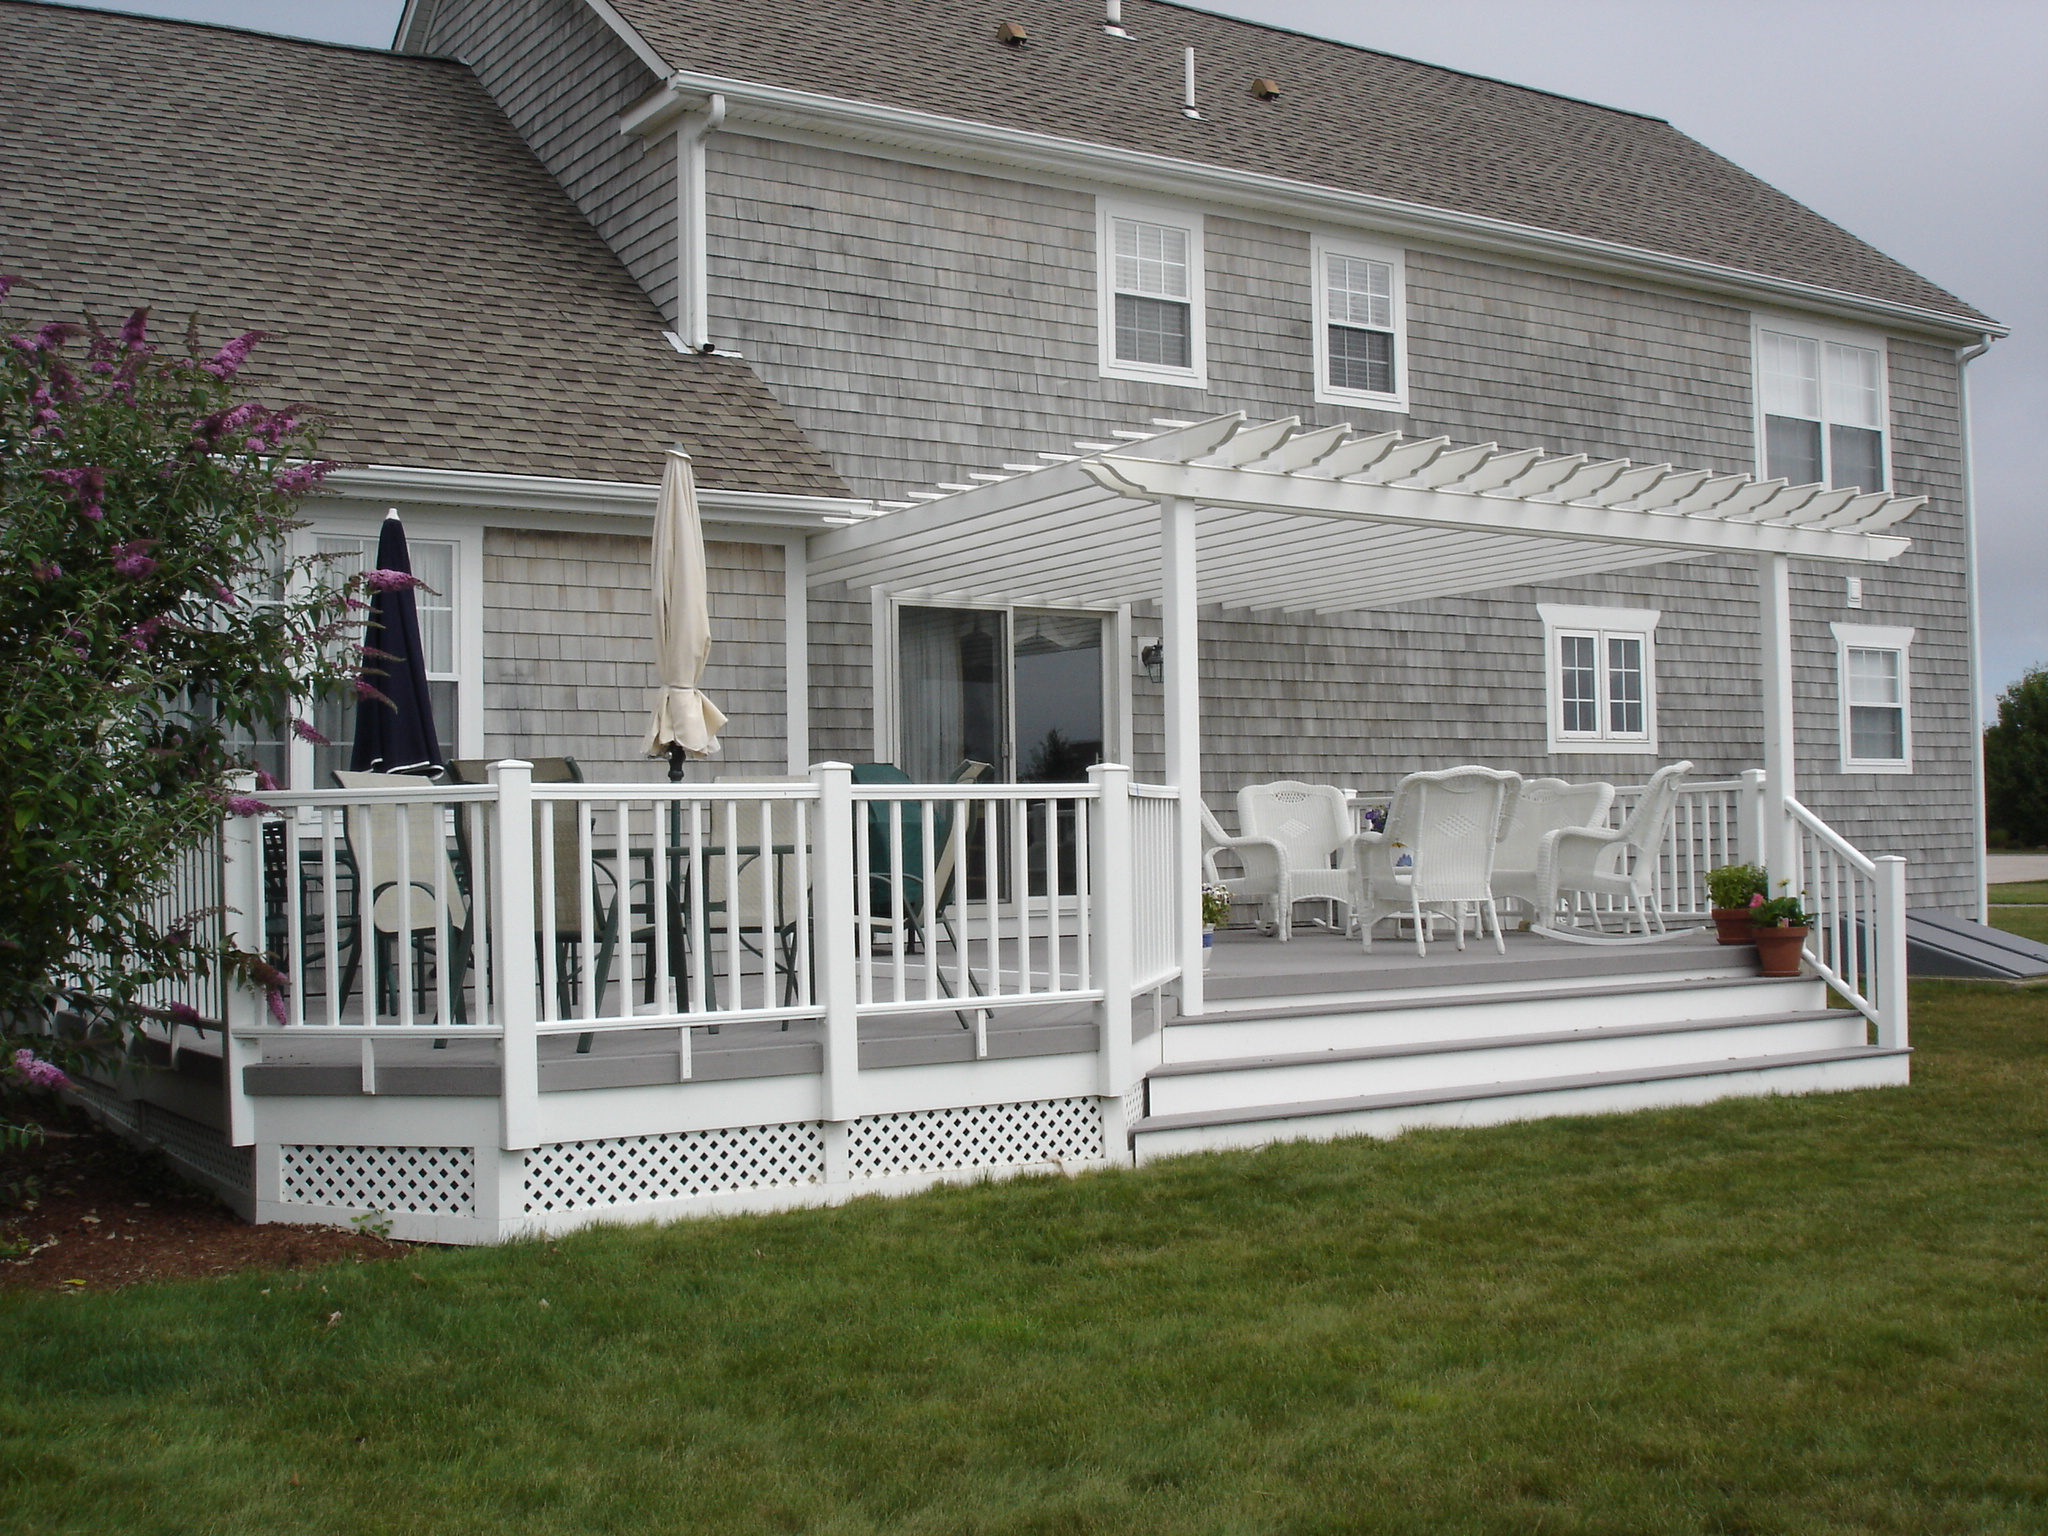 St louis mo pergola deck designs by archadeck st louis decks screened porches pergolas by - Deco pergola ...